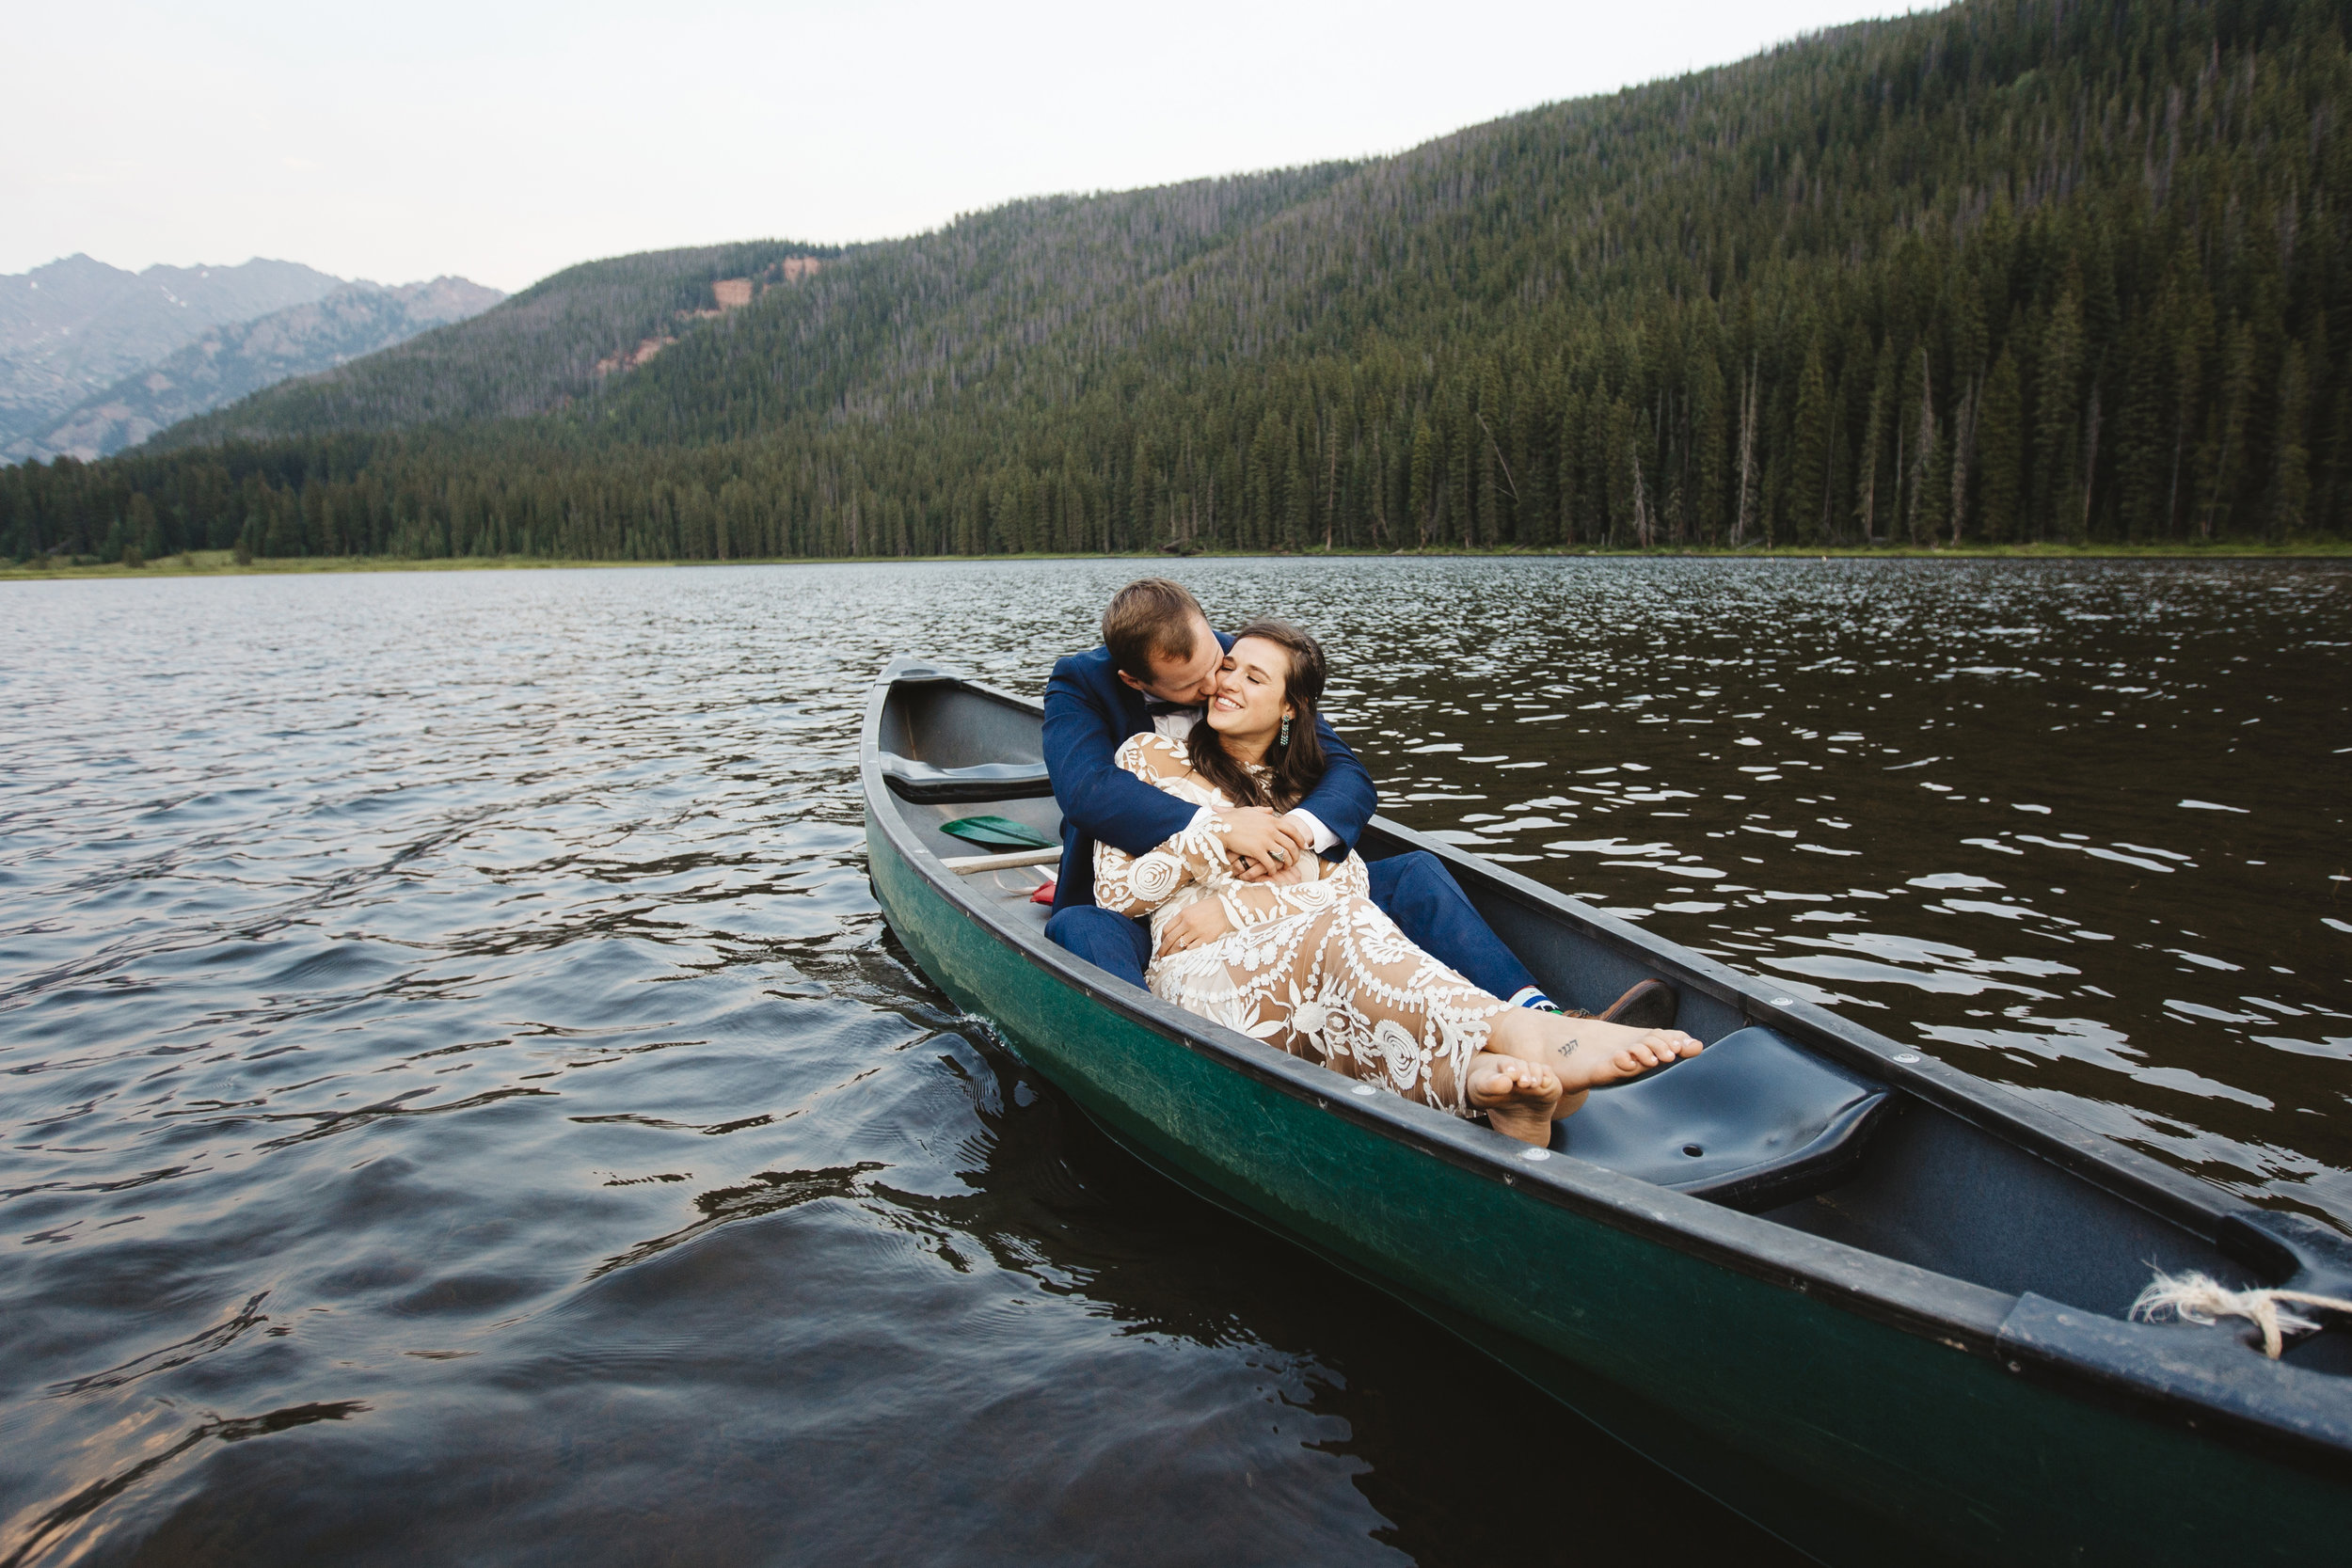 Vail-elopement-photographer-piney-river-ranch-colorado-destination-wedding2.JPG